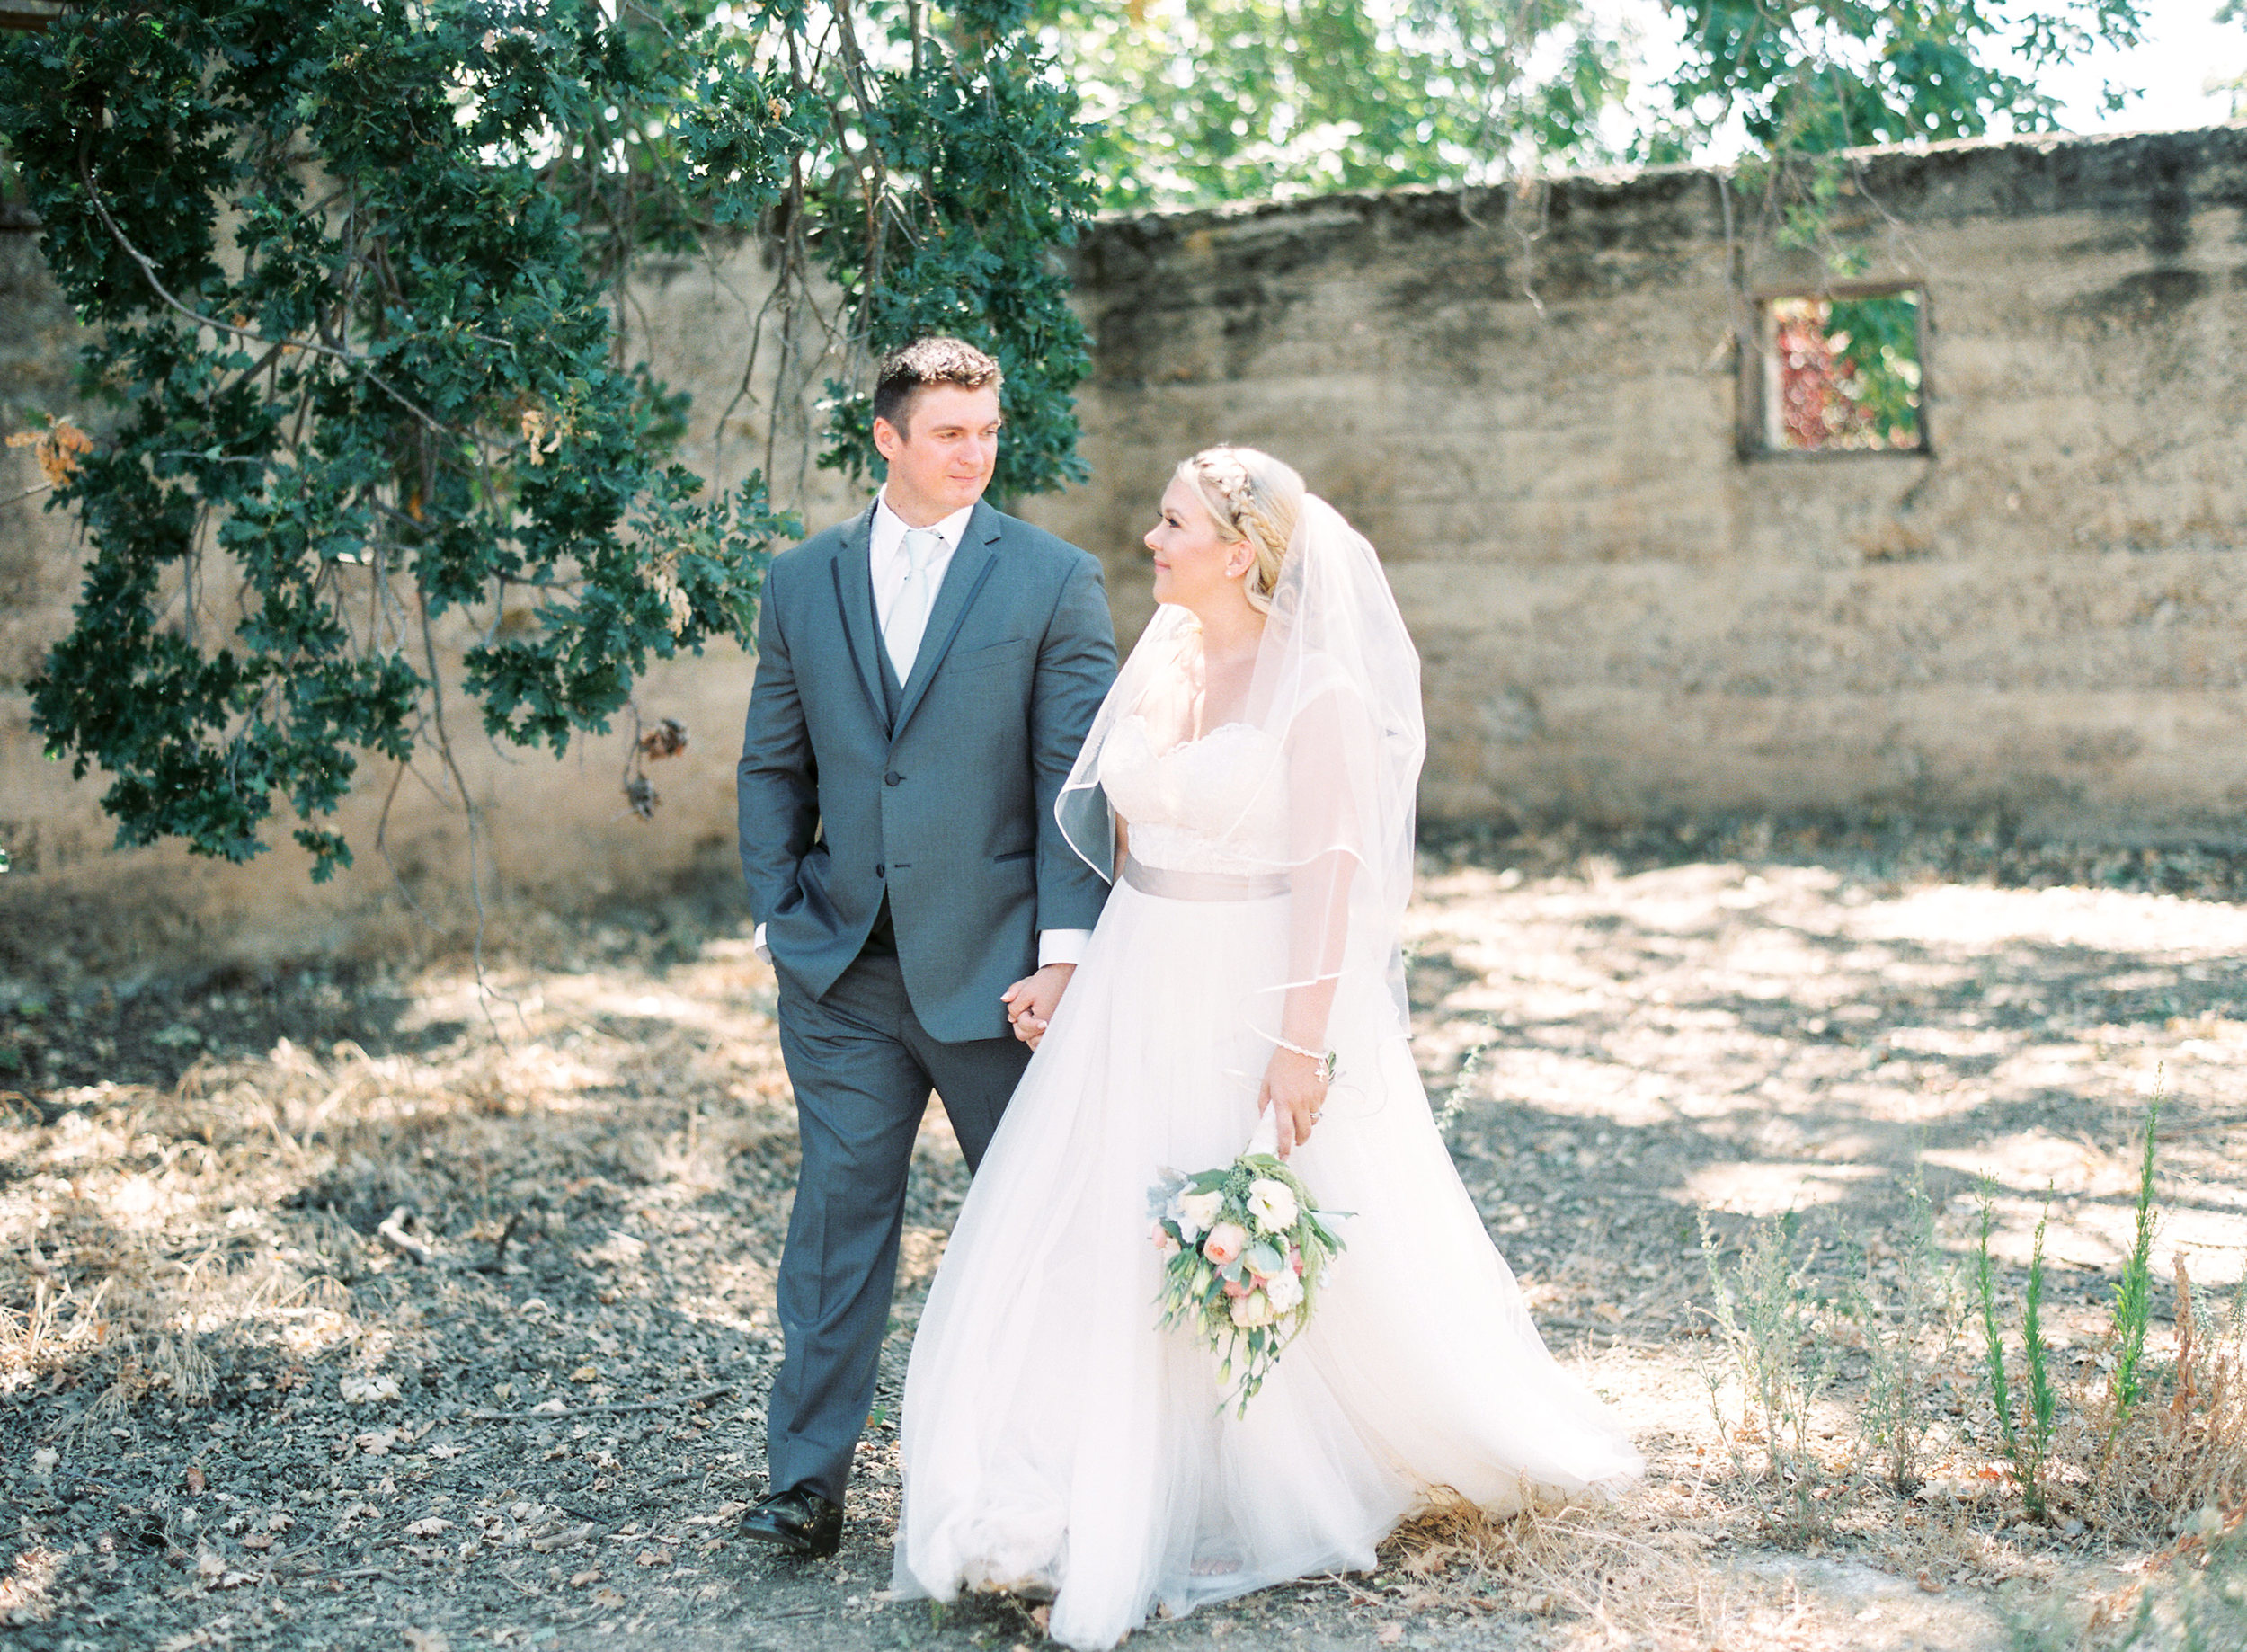 southern-inspired-wedding-at-ravenswood-historic-site-012-5.jpg